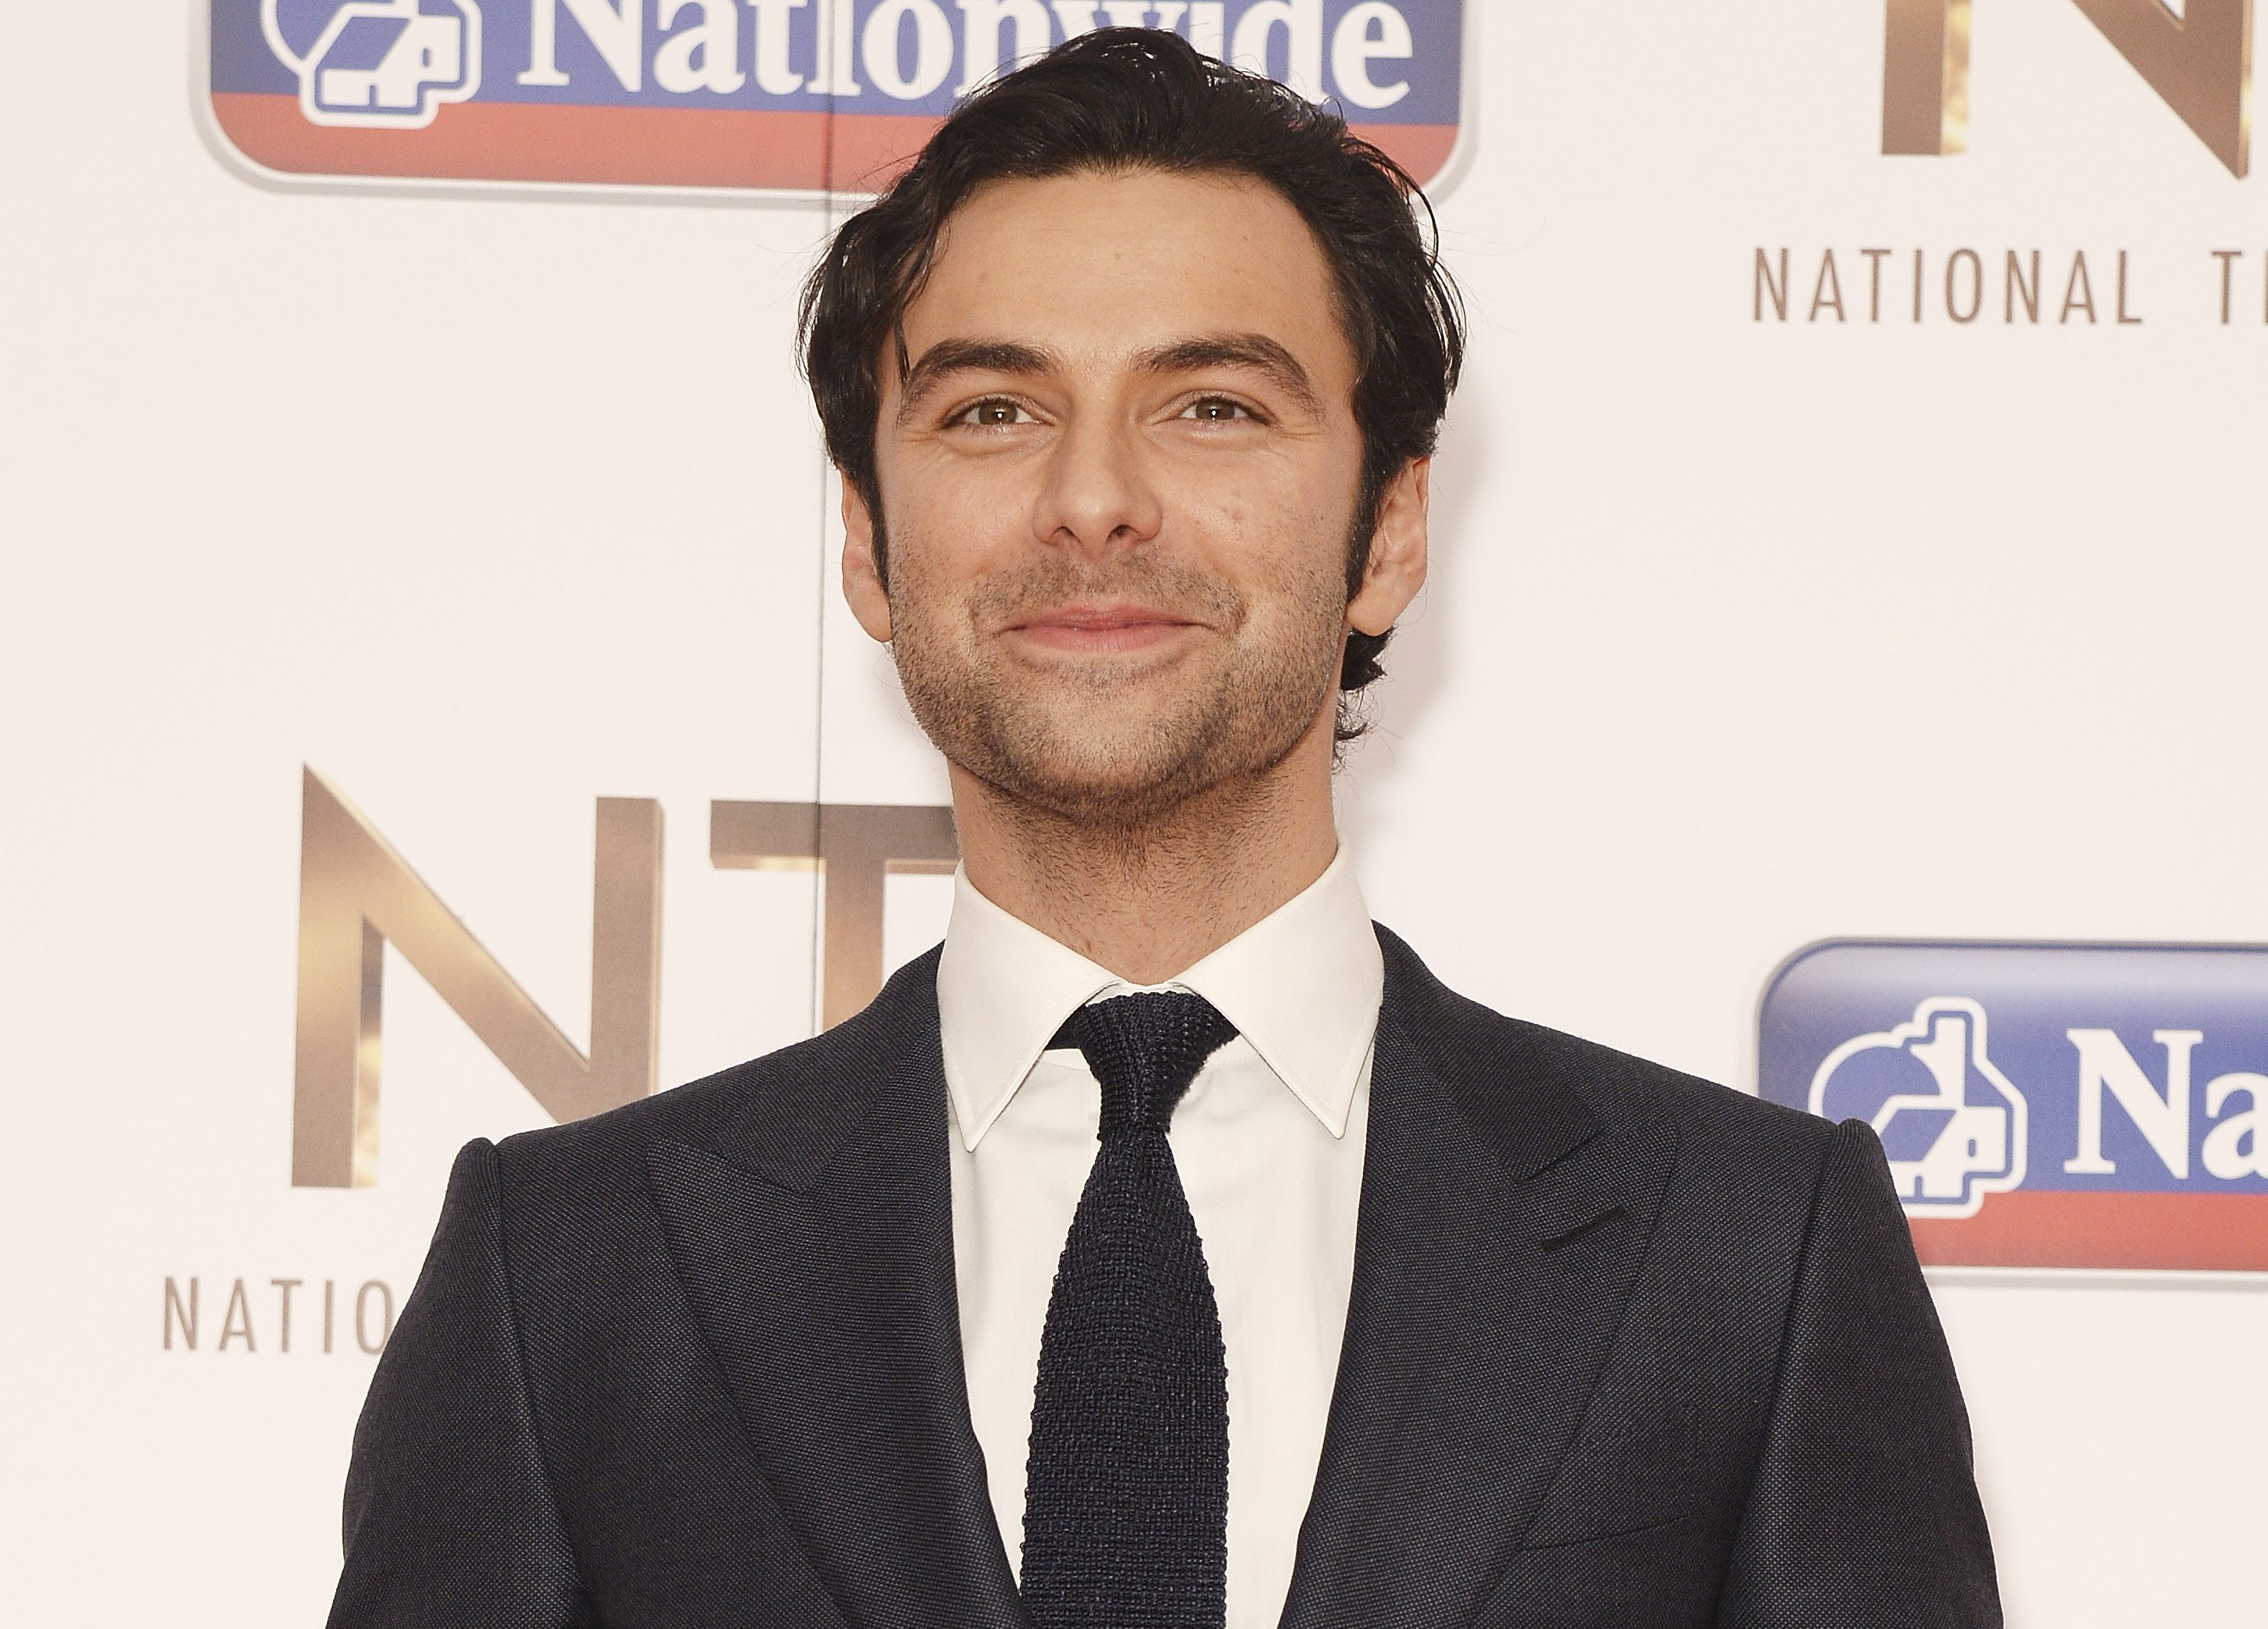 LONDON, ENGLAND - JANUARY 20: Aidan Turner, with the award for Impact/TV Moment, attends the 21st National Television Awards at The O2 Arena on January 20, 2016 in London, England. (Photo by Dave J Hogan/Dave J Hogan/Getty Images)